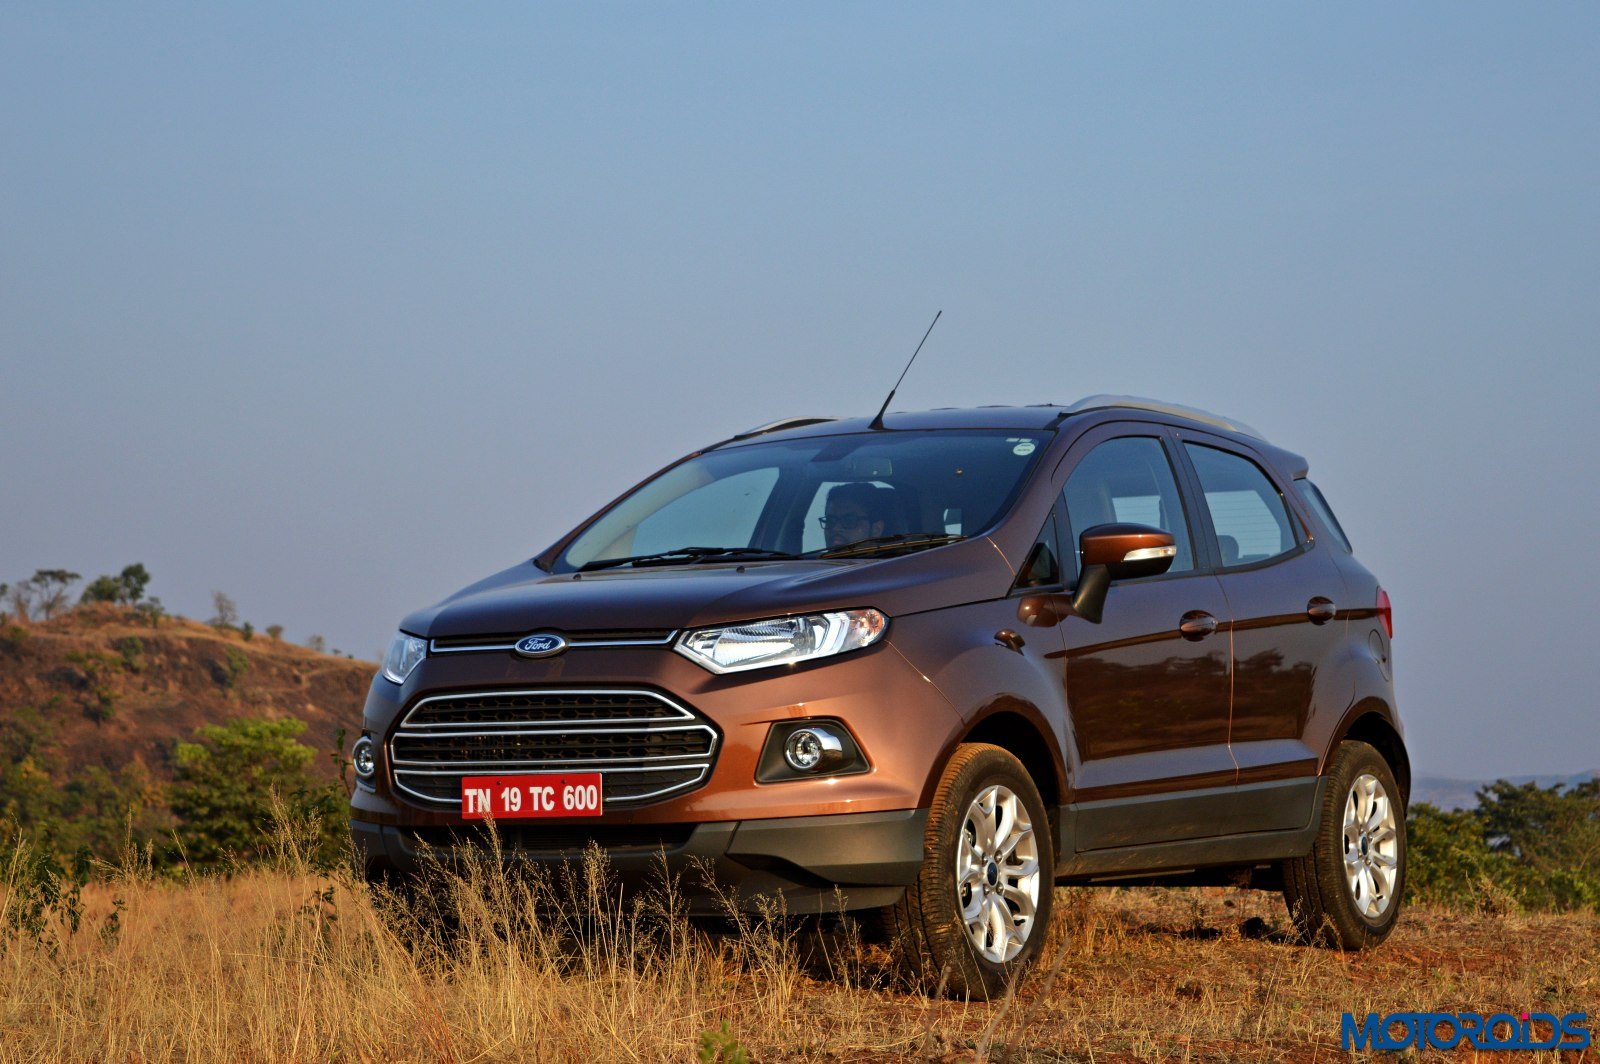 new 2016 ford ecosport 15 tdci diesel review rational